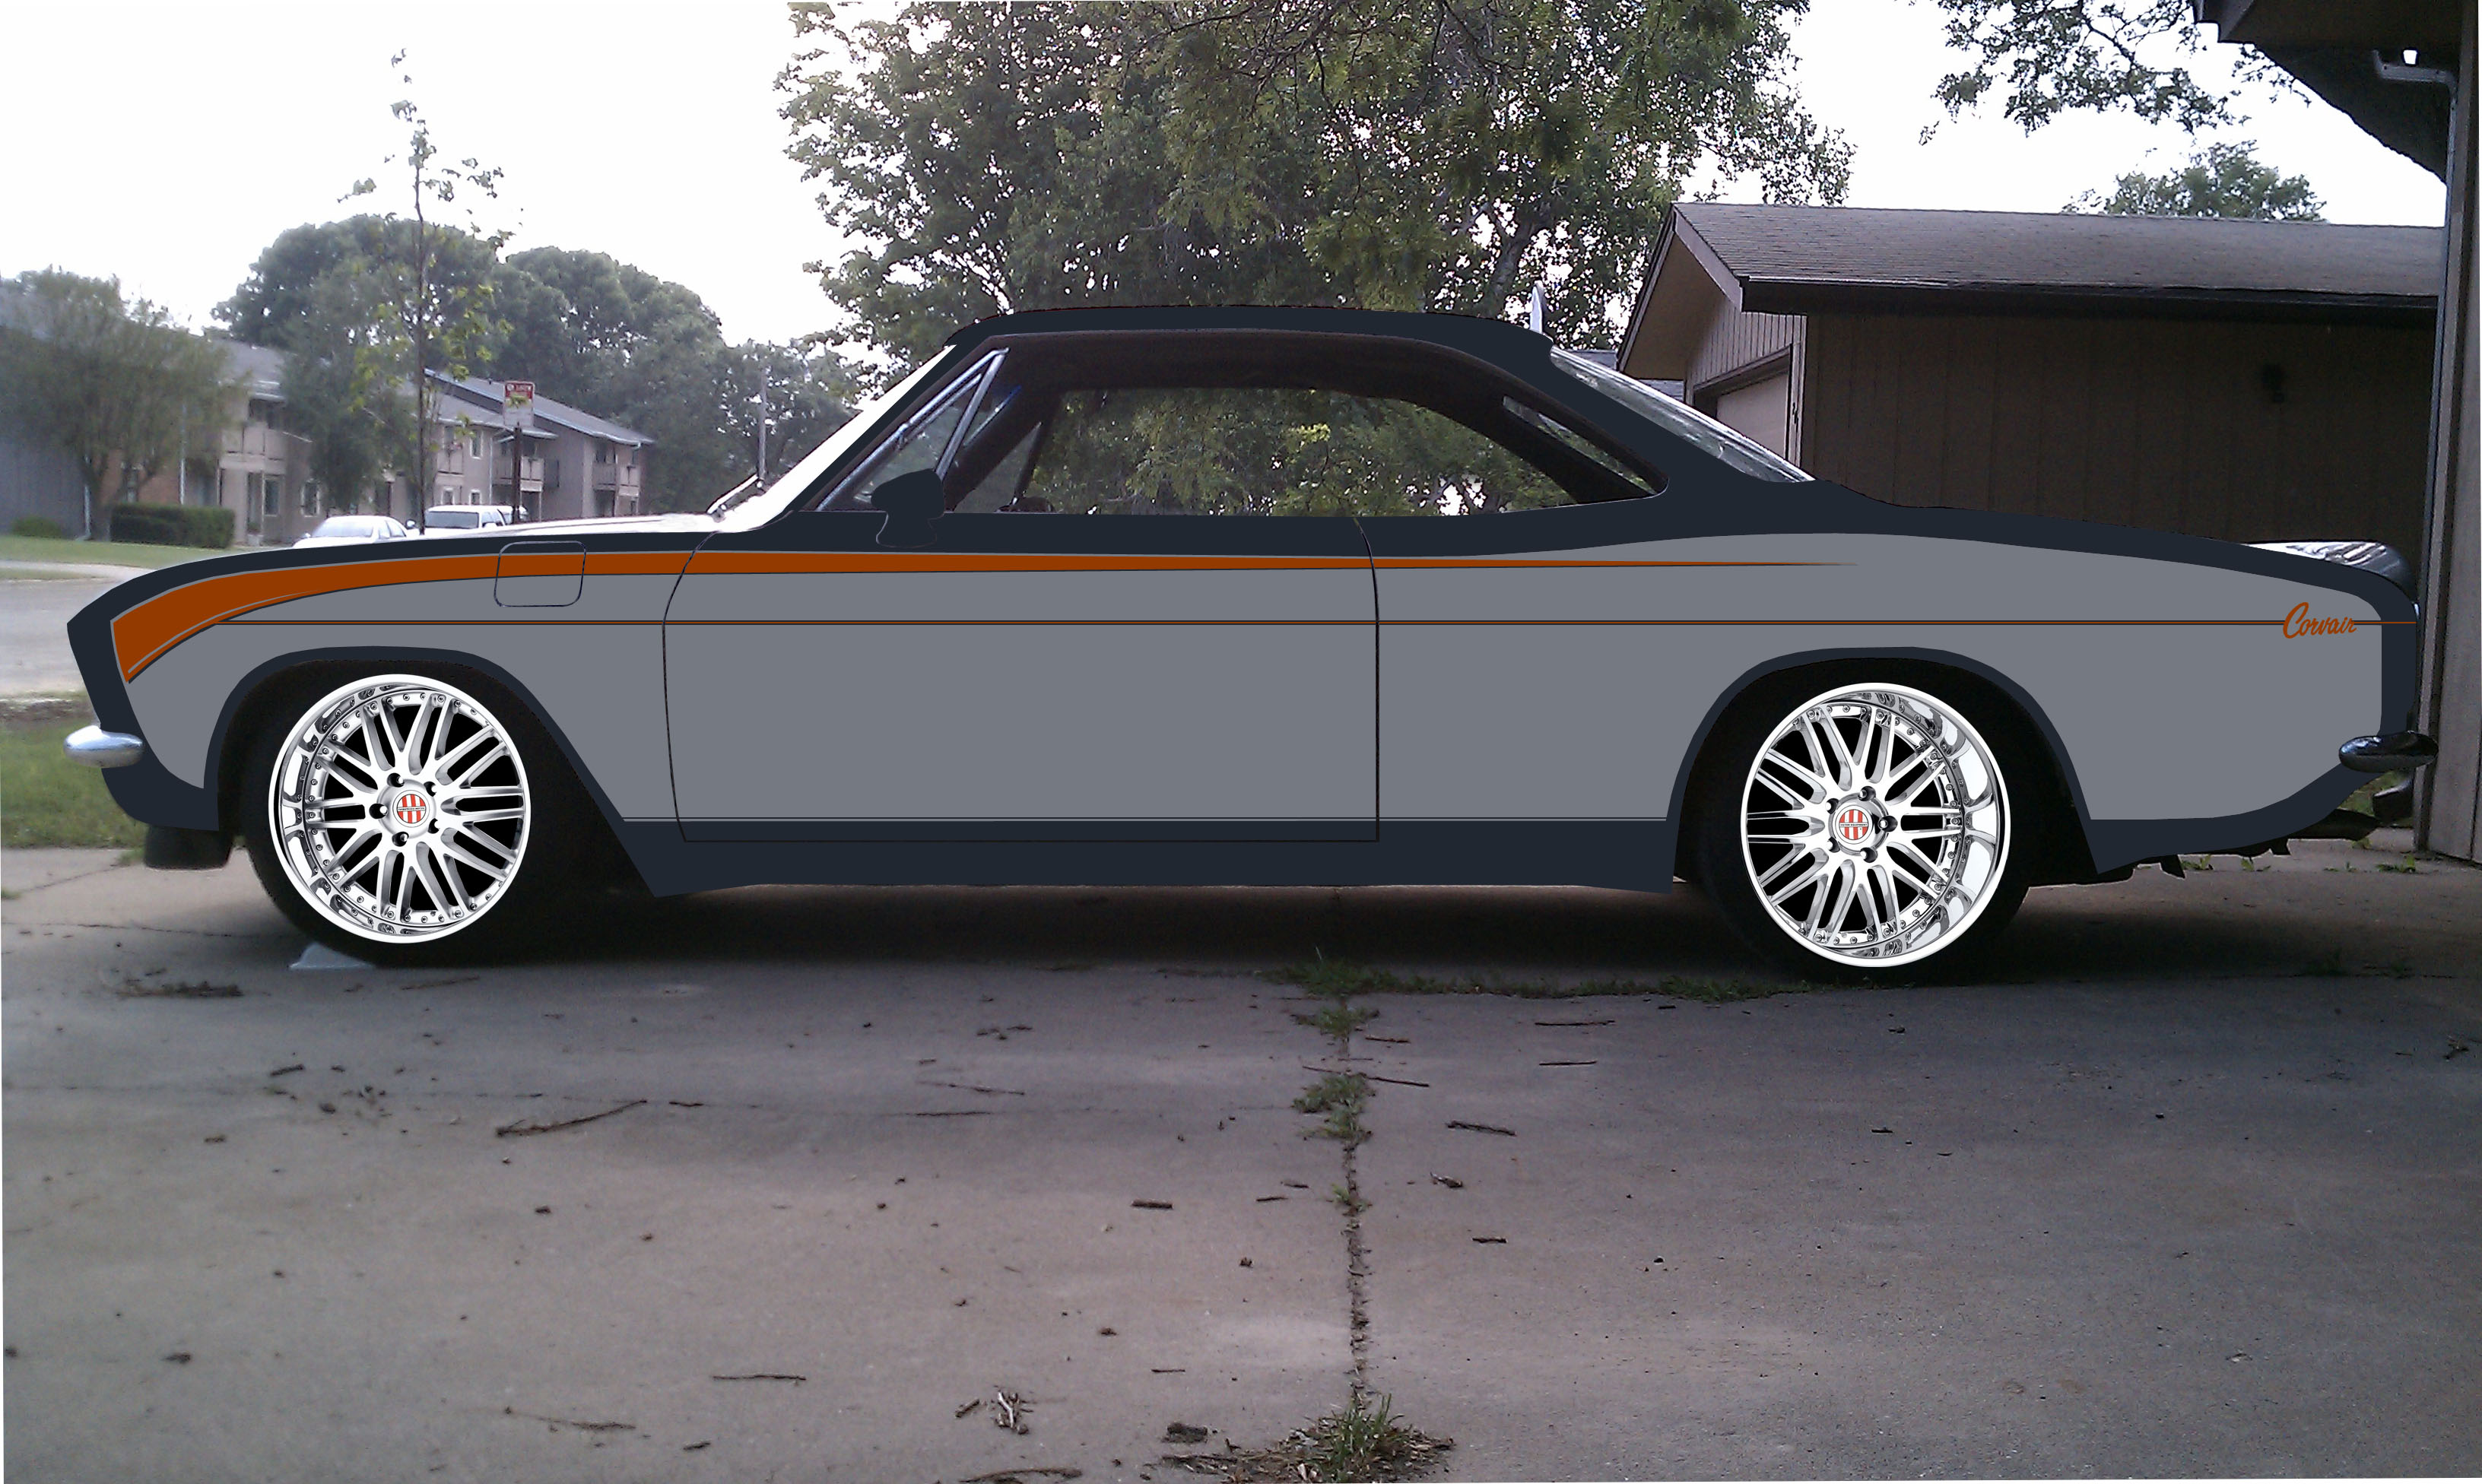 Filed under: Corvair Project